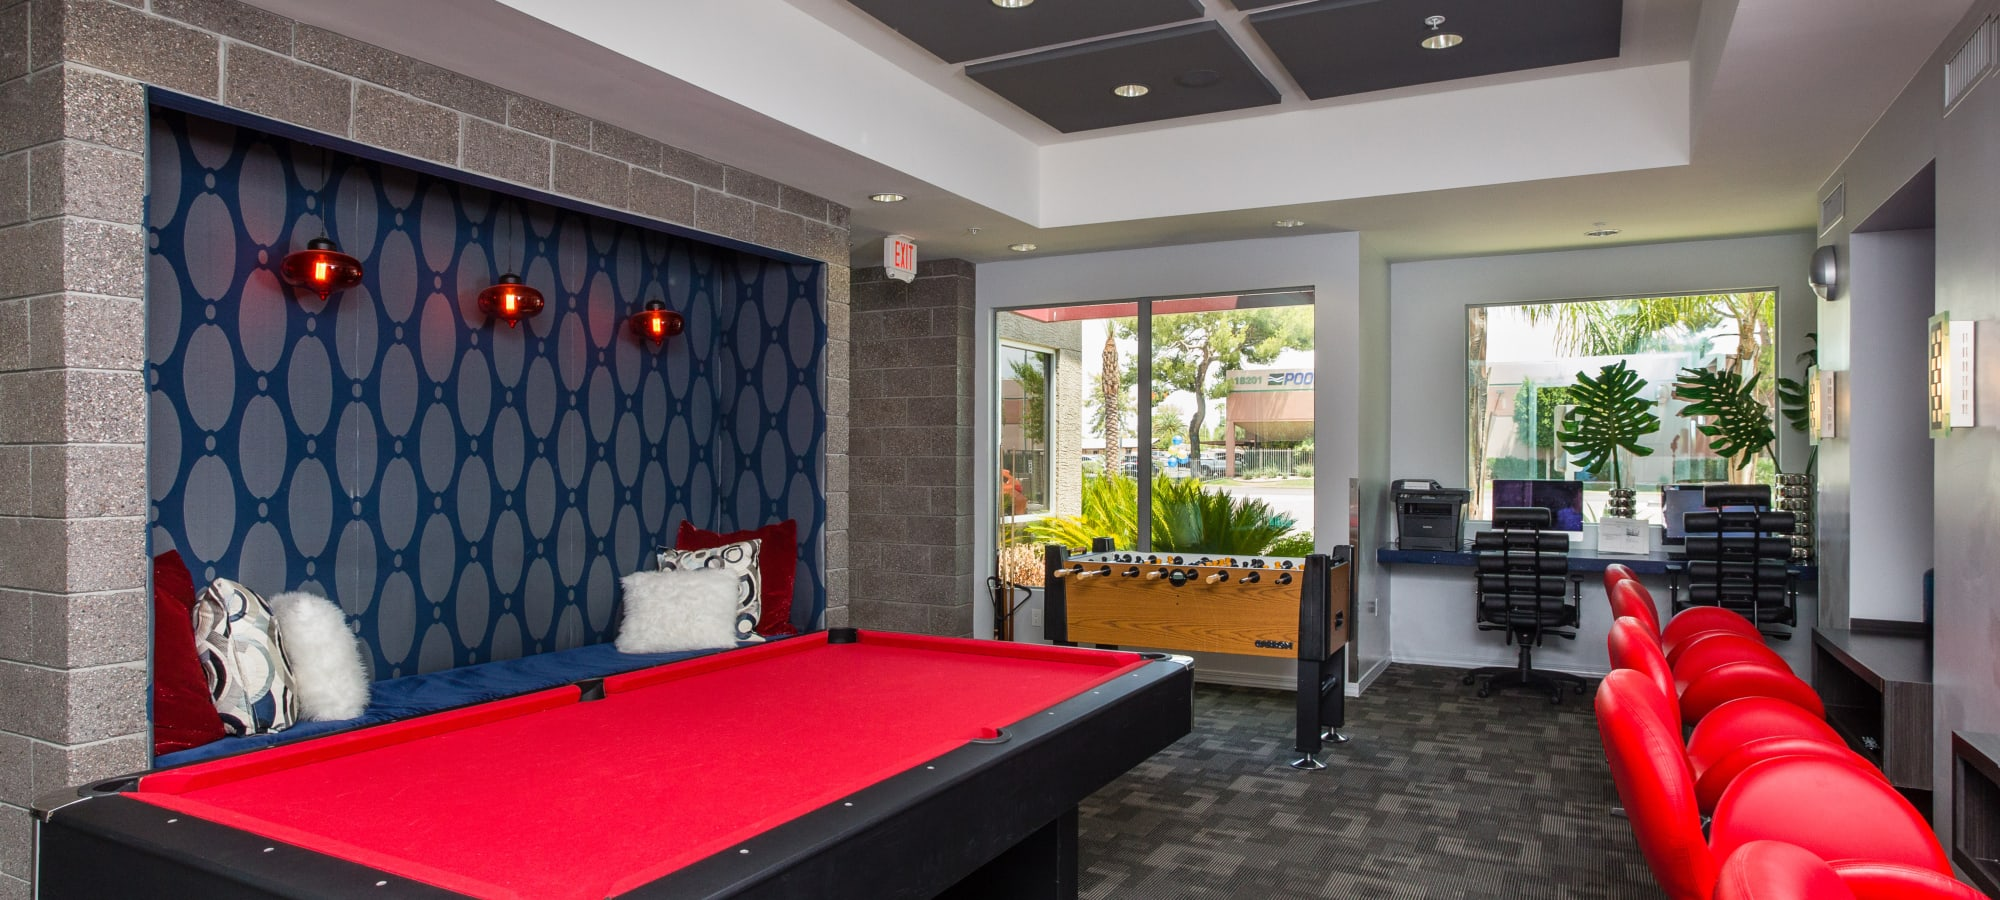 A game room for residents at Avenue 25 Apartments in Phoenix, Arizona